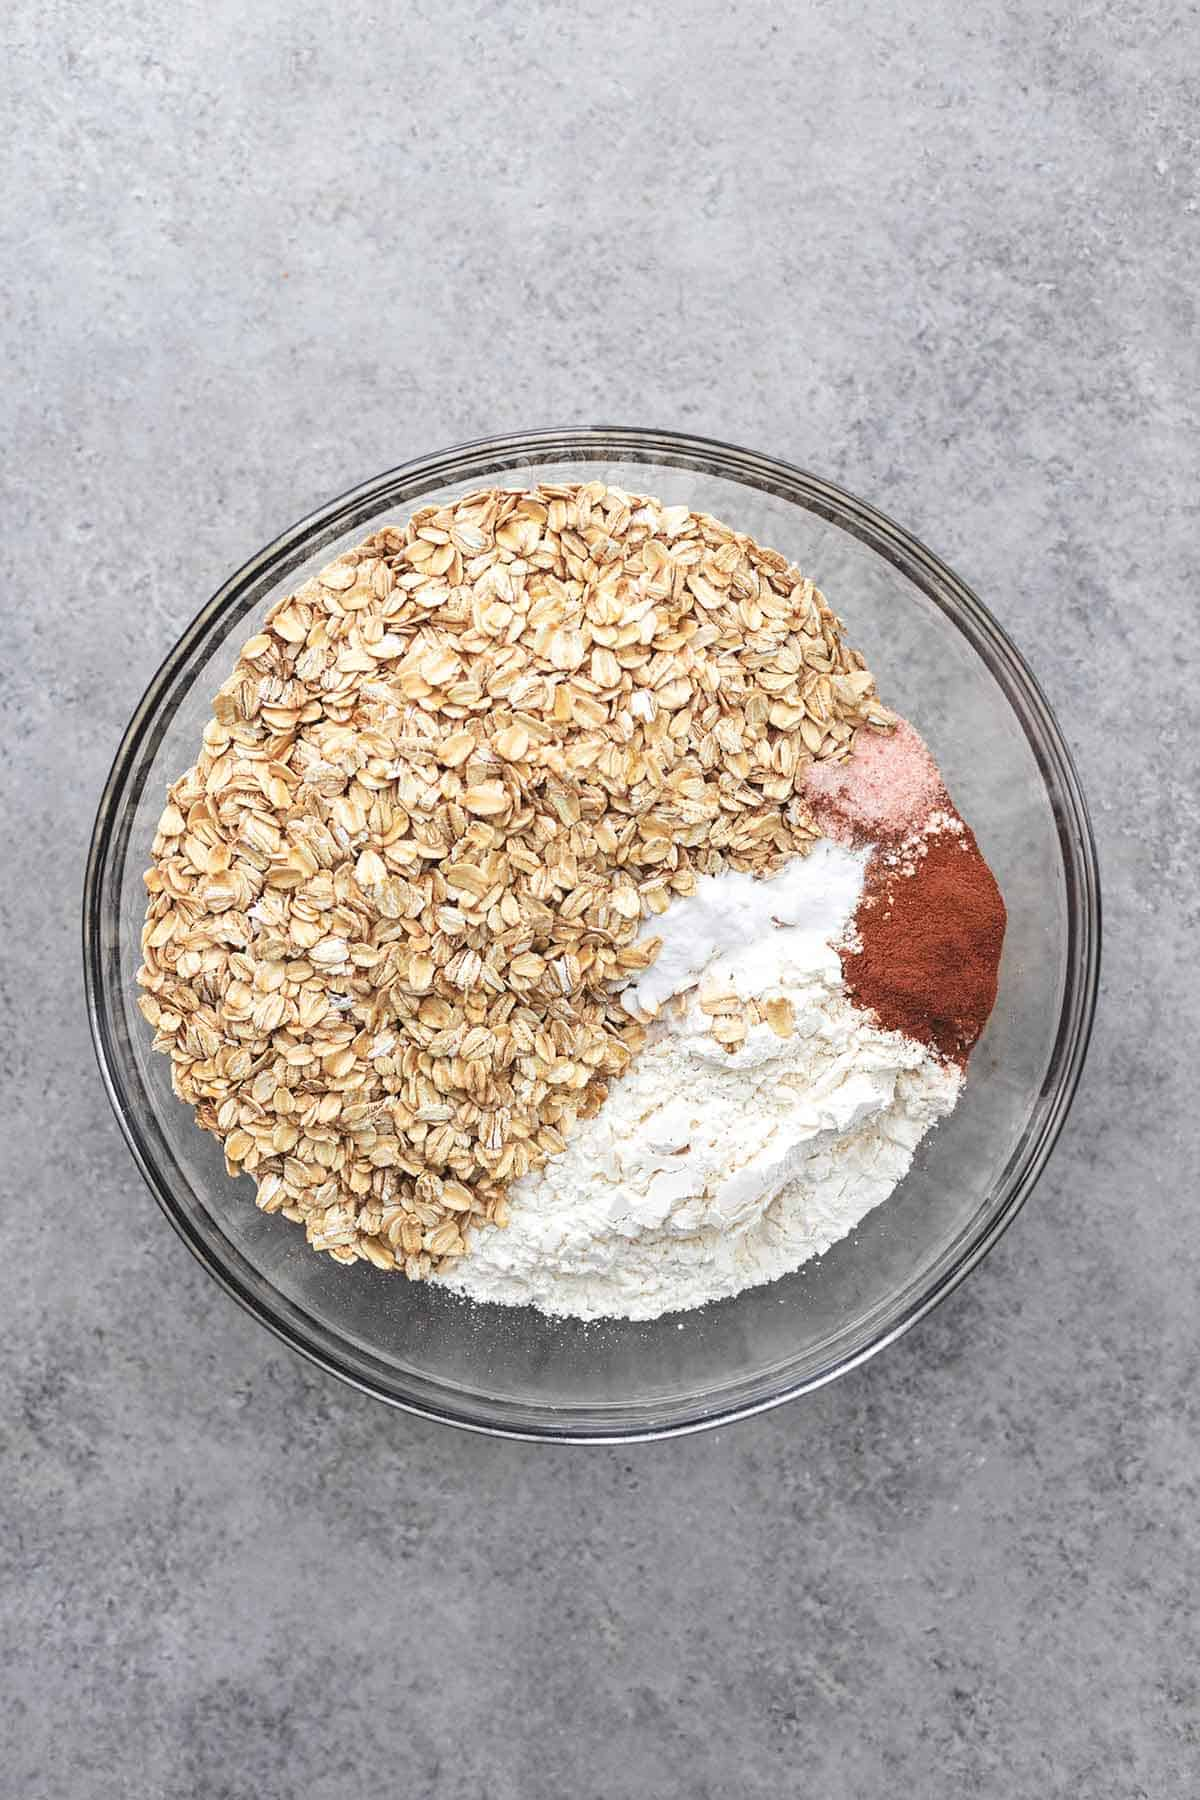 top view of oats, flour, salt, and spices in a glass bowl.